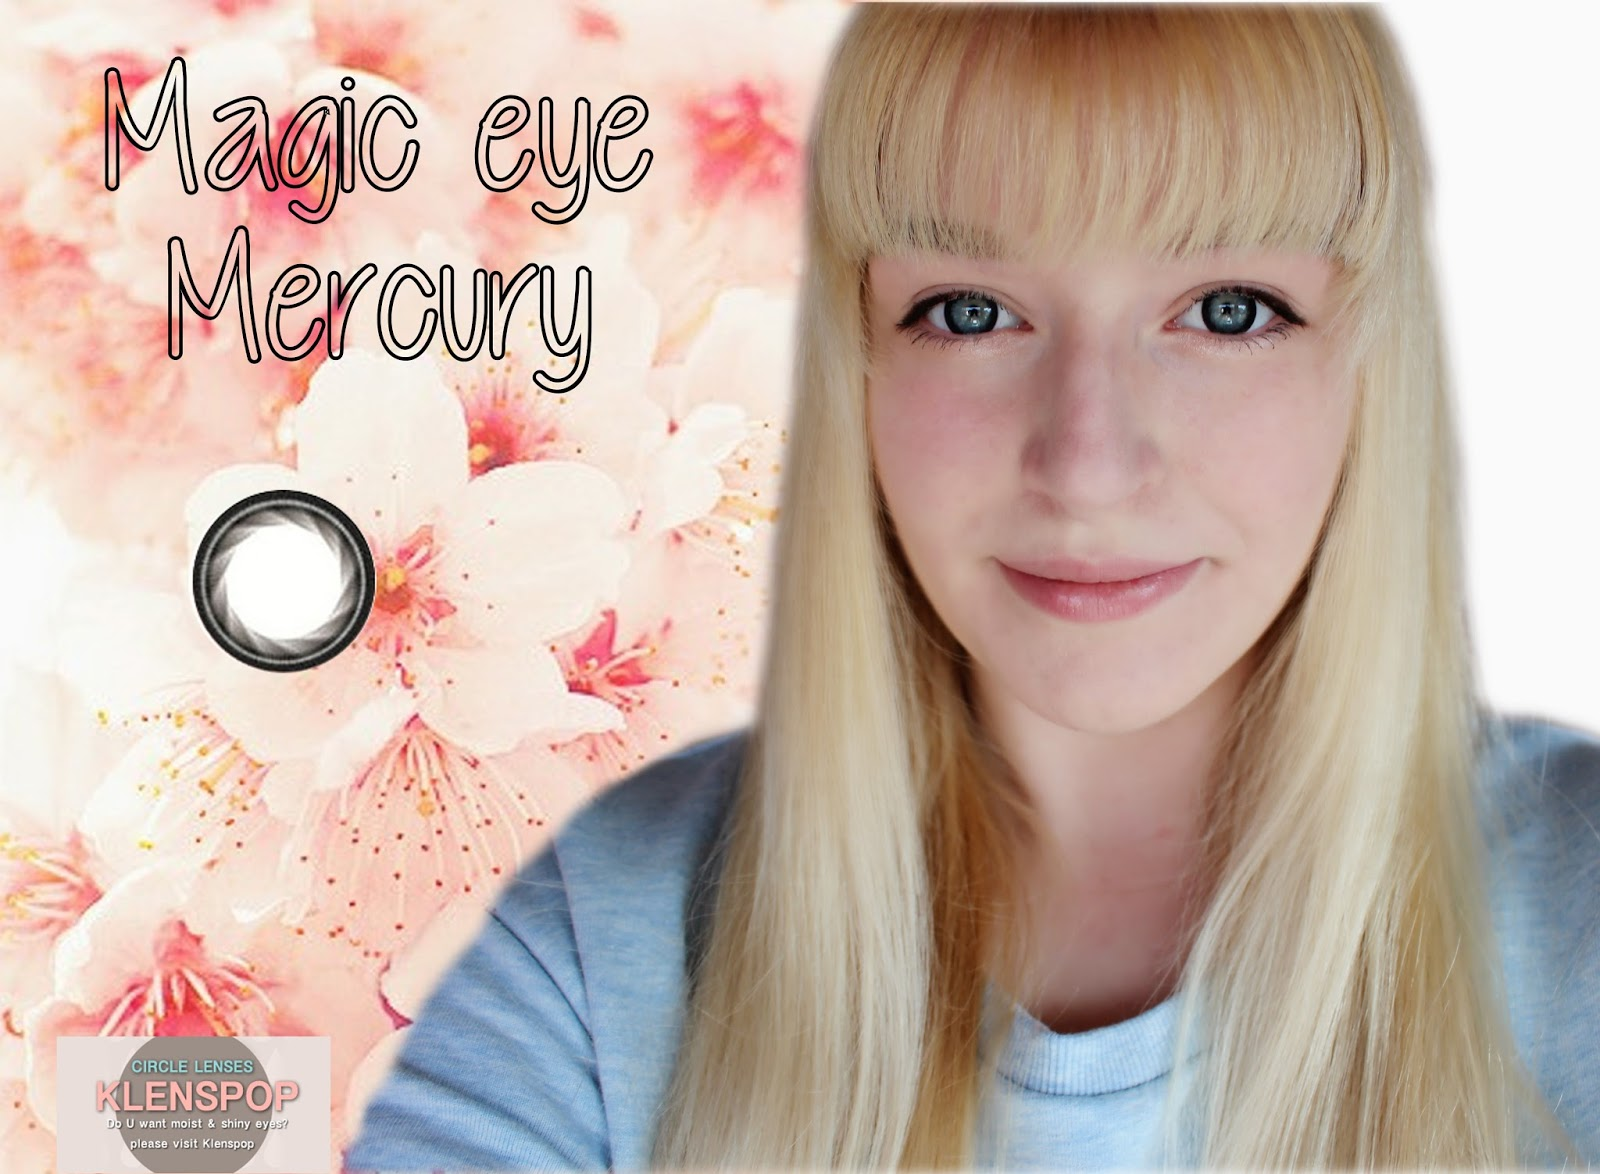 http://klenspop.com/en/black/160-magic-eye-mercury-circle-lenses.html